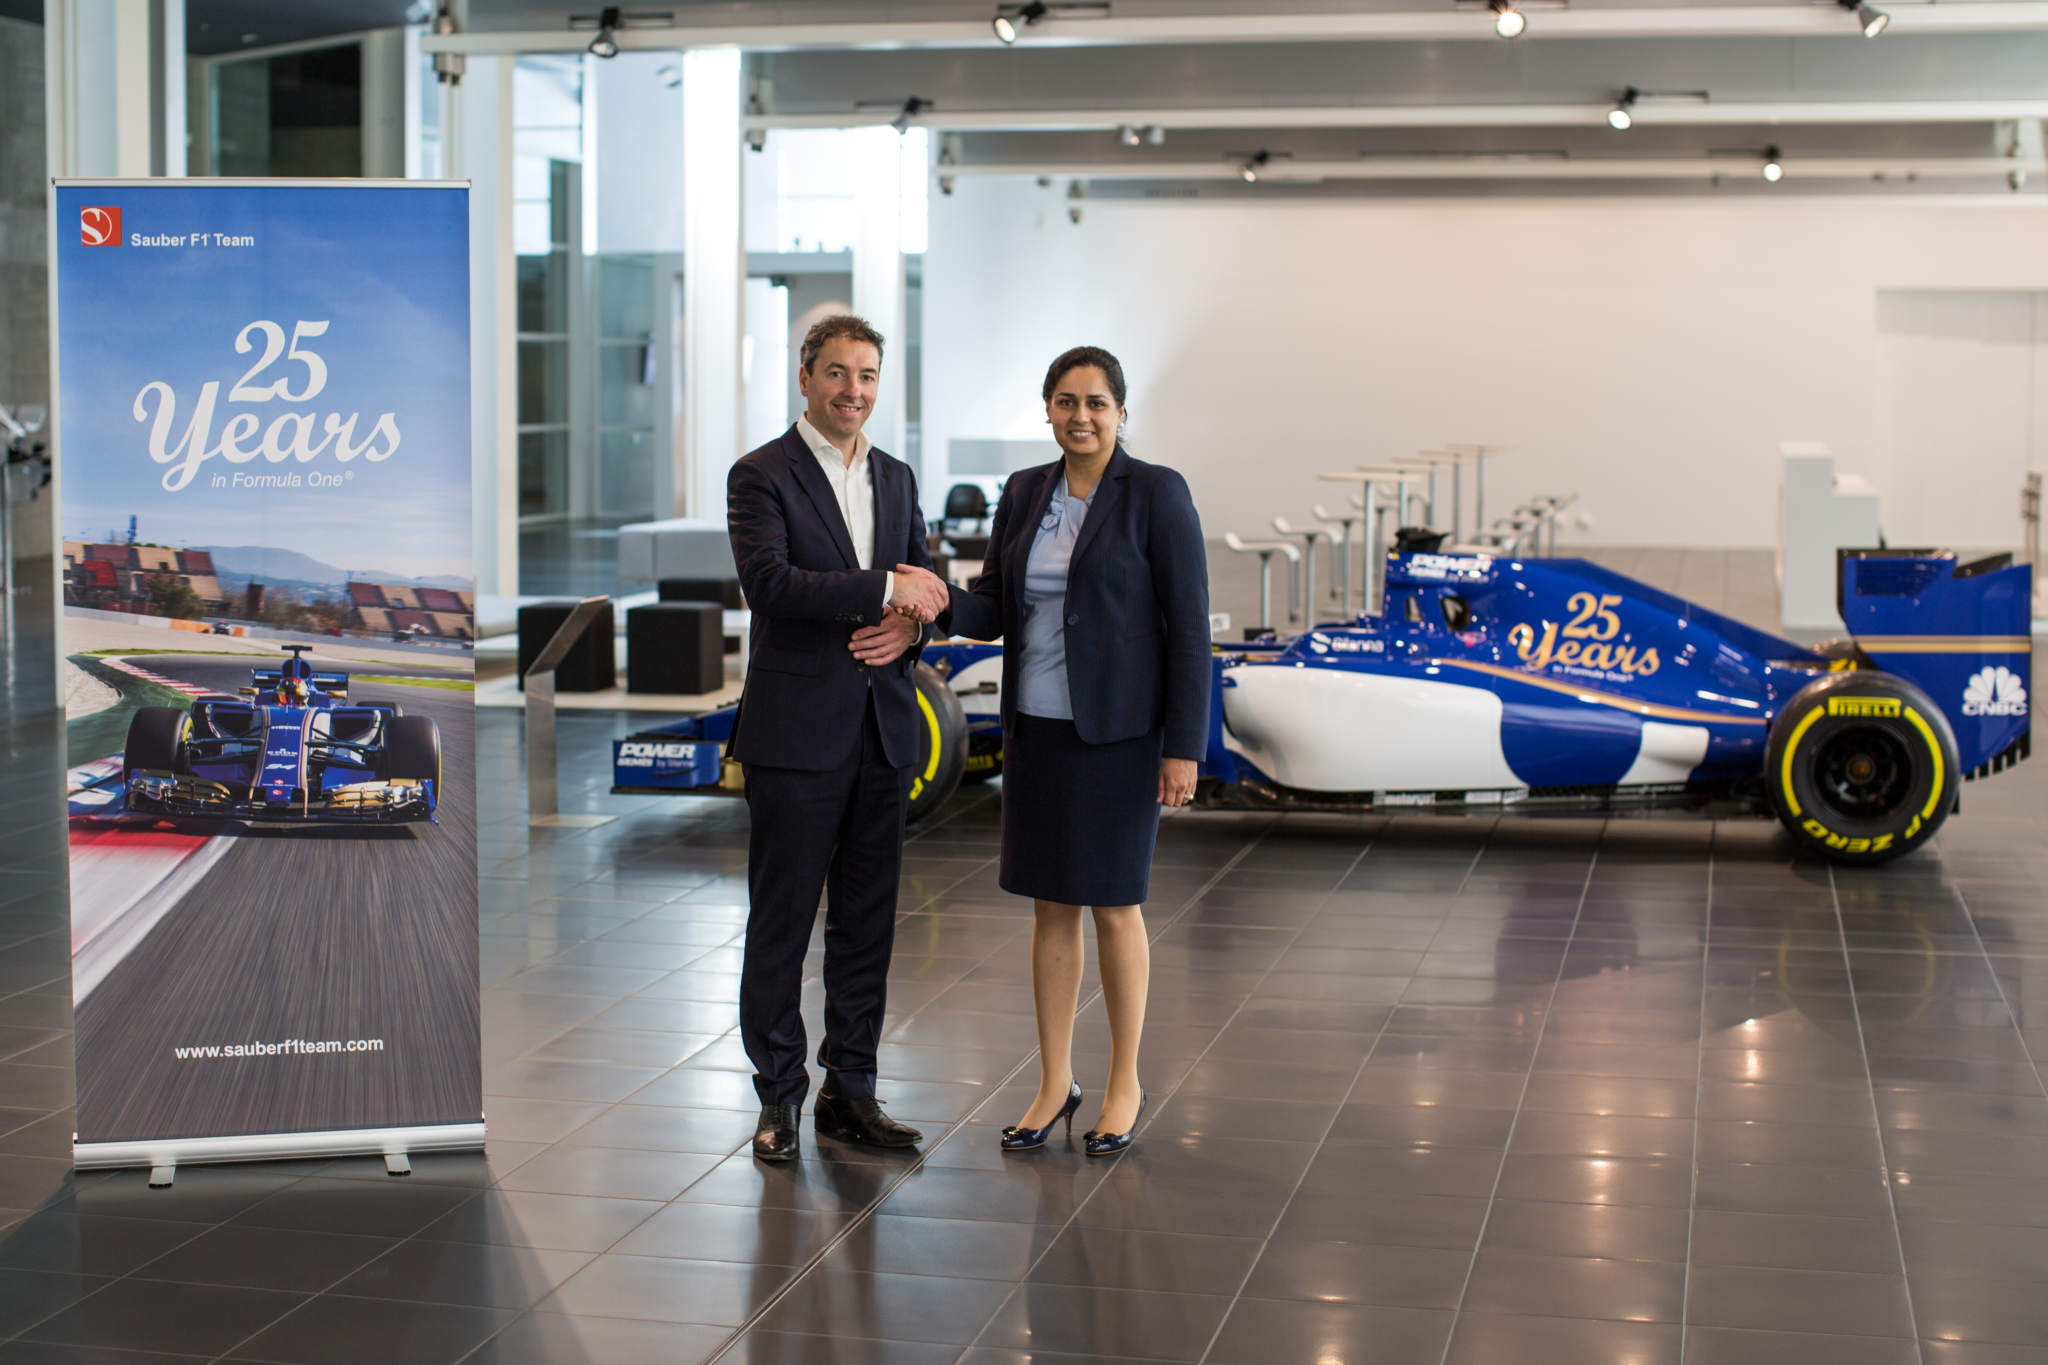 Additive Industries CEO Daan Kersten shaking hands with Team Principal Monisha Kaltenborn. Photo via Additive Industries.